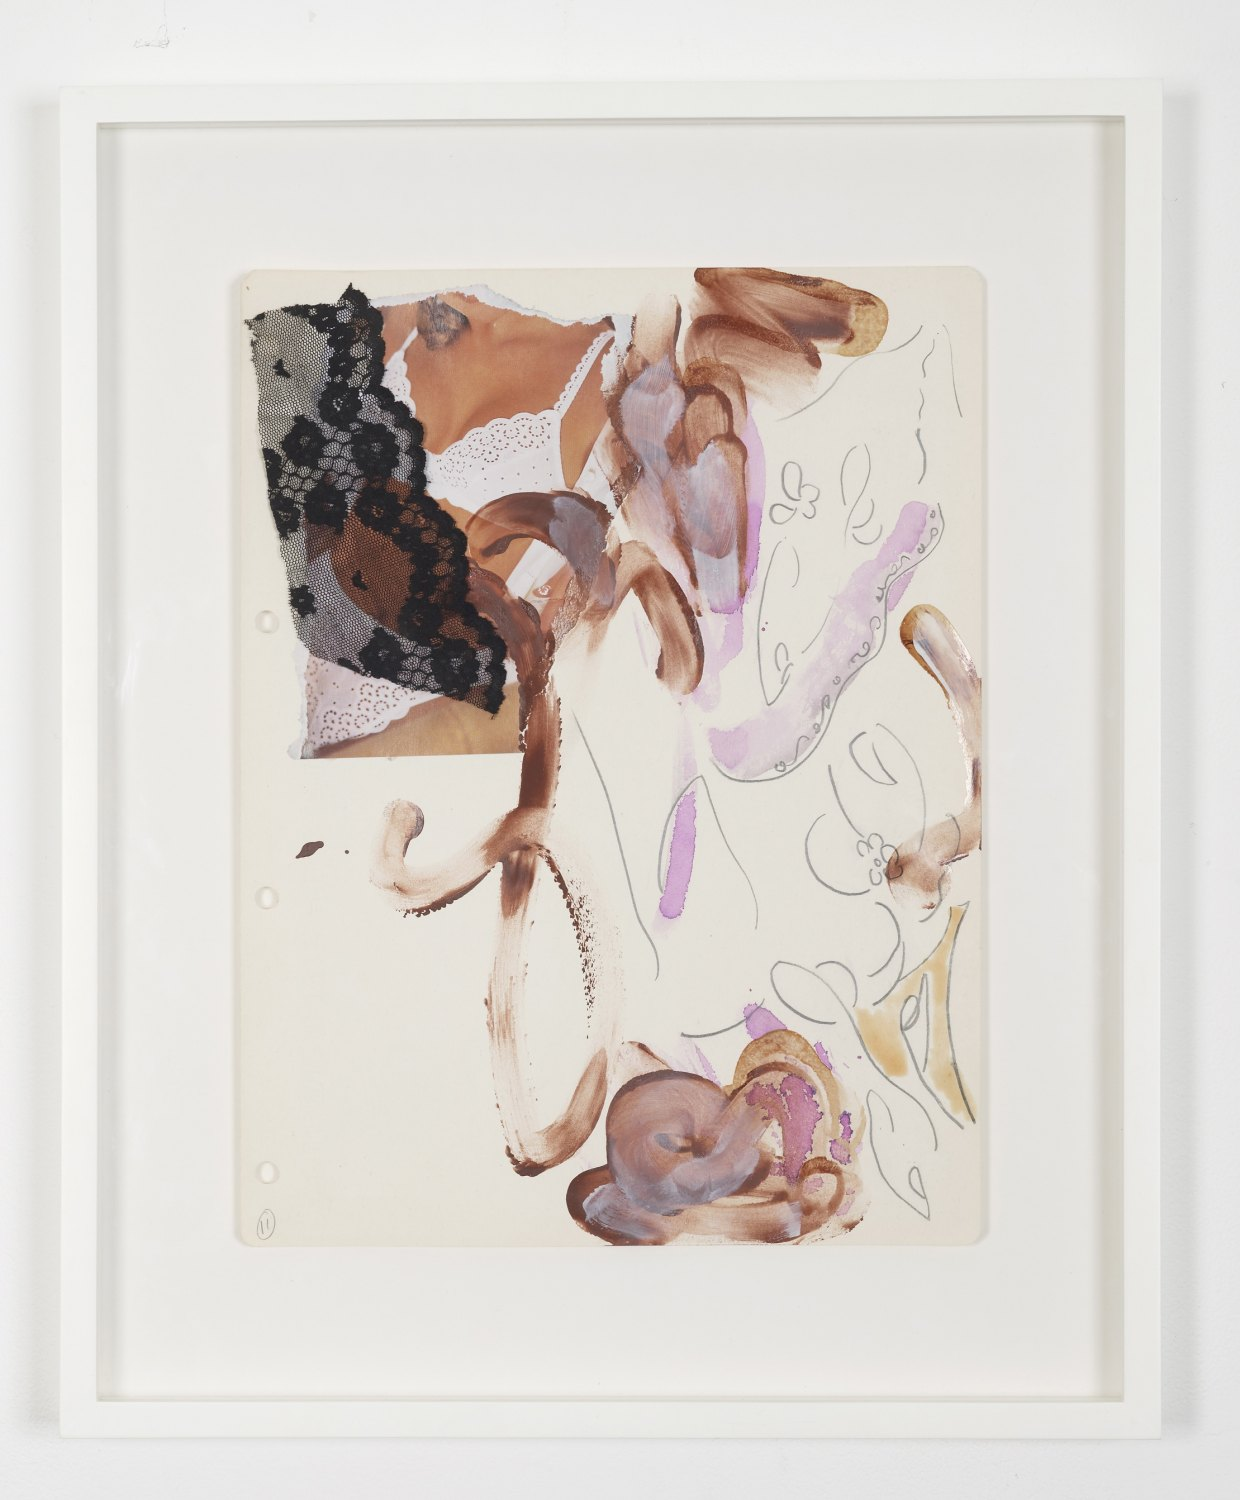 Marc Camille Chaimowicz From Suite One..., 1995 Pencil, ink, and gouache on paper, 60 × 47 cm